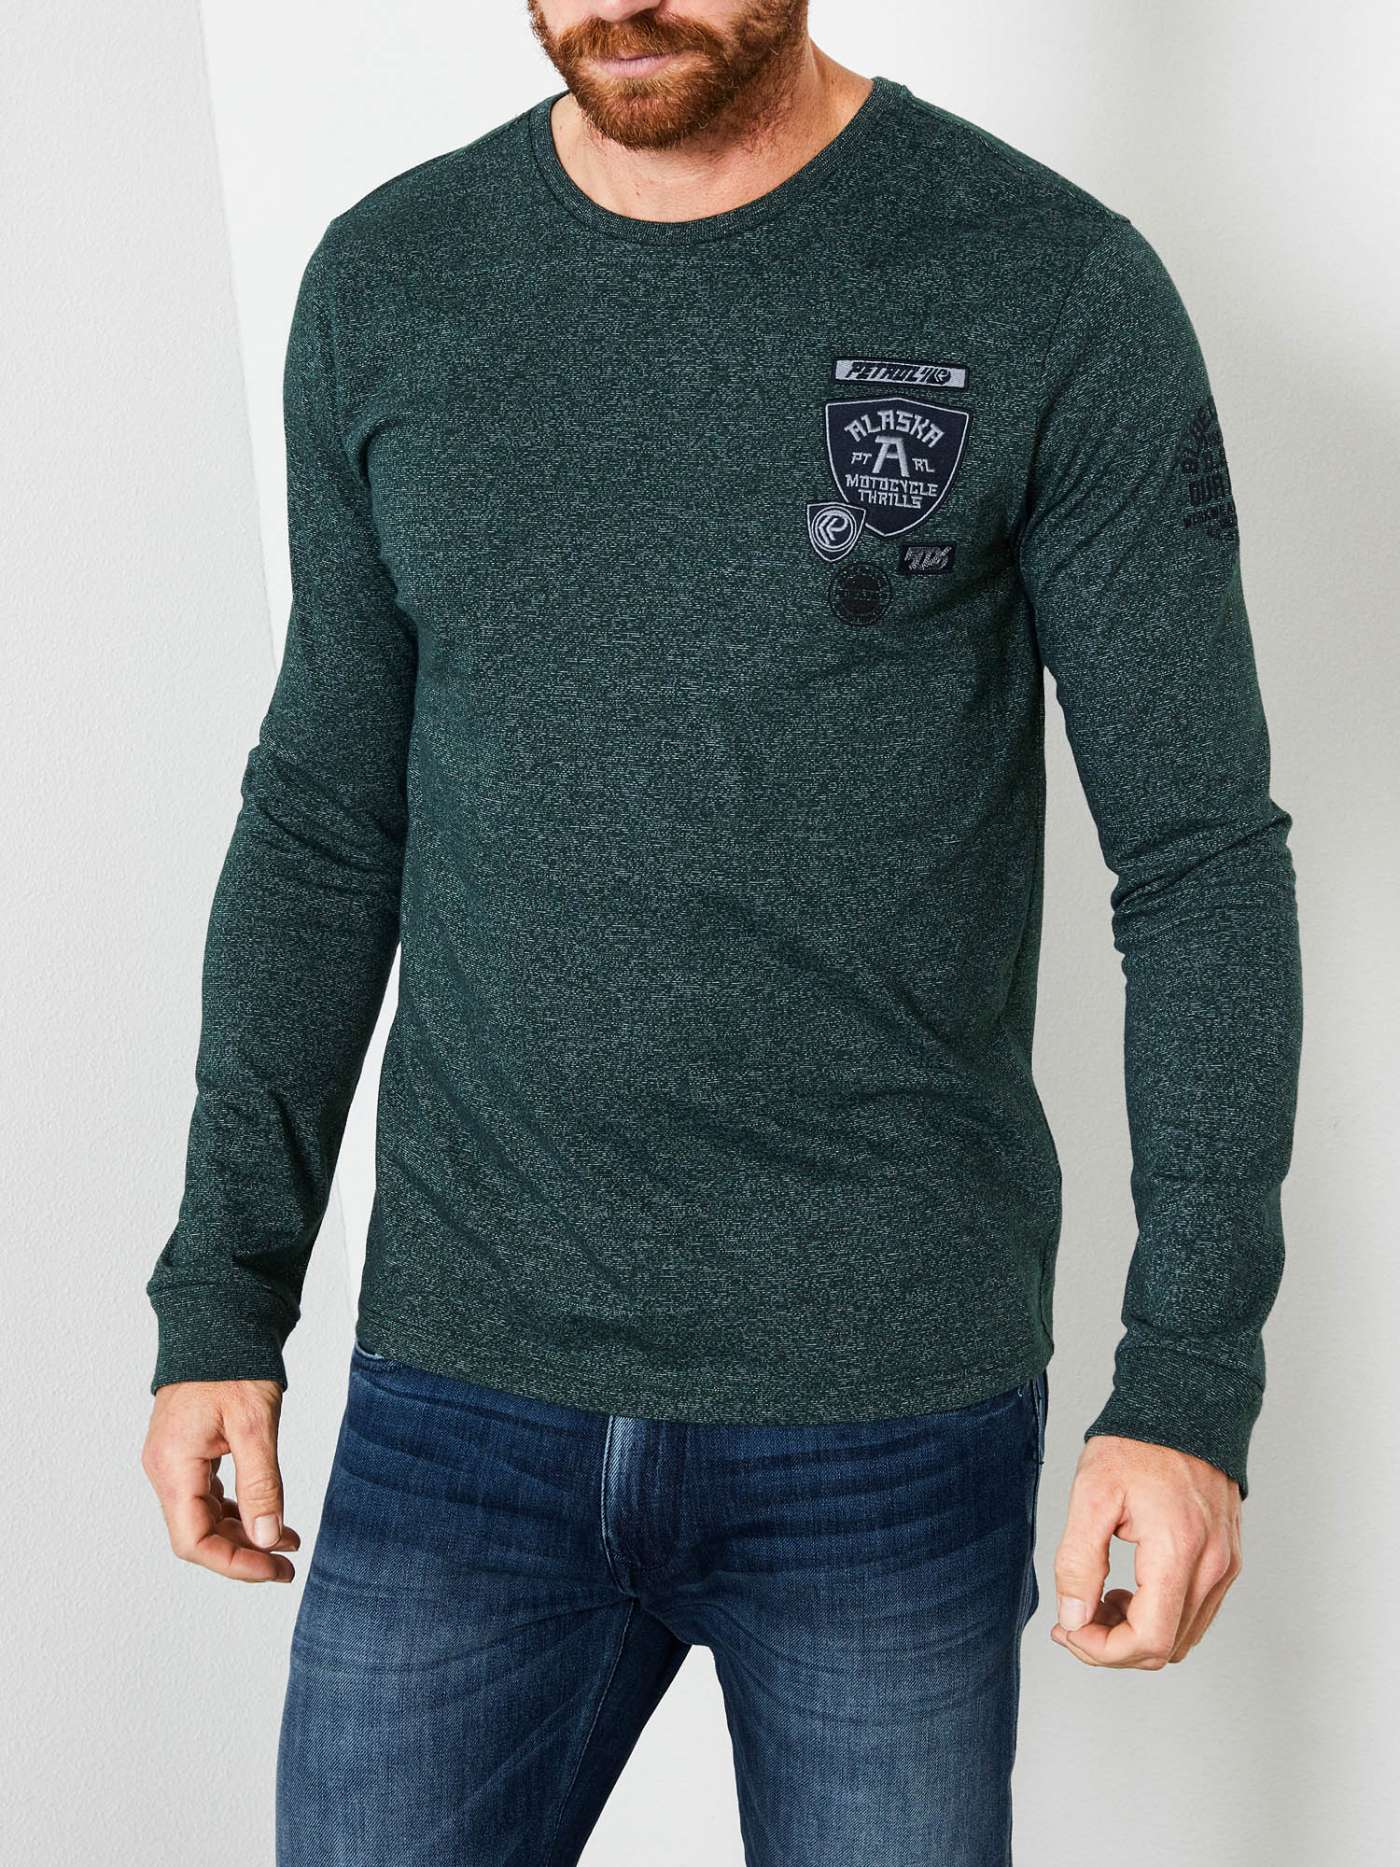 Long-sleeved shirt with patches